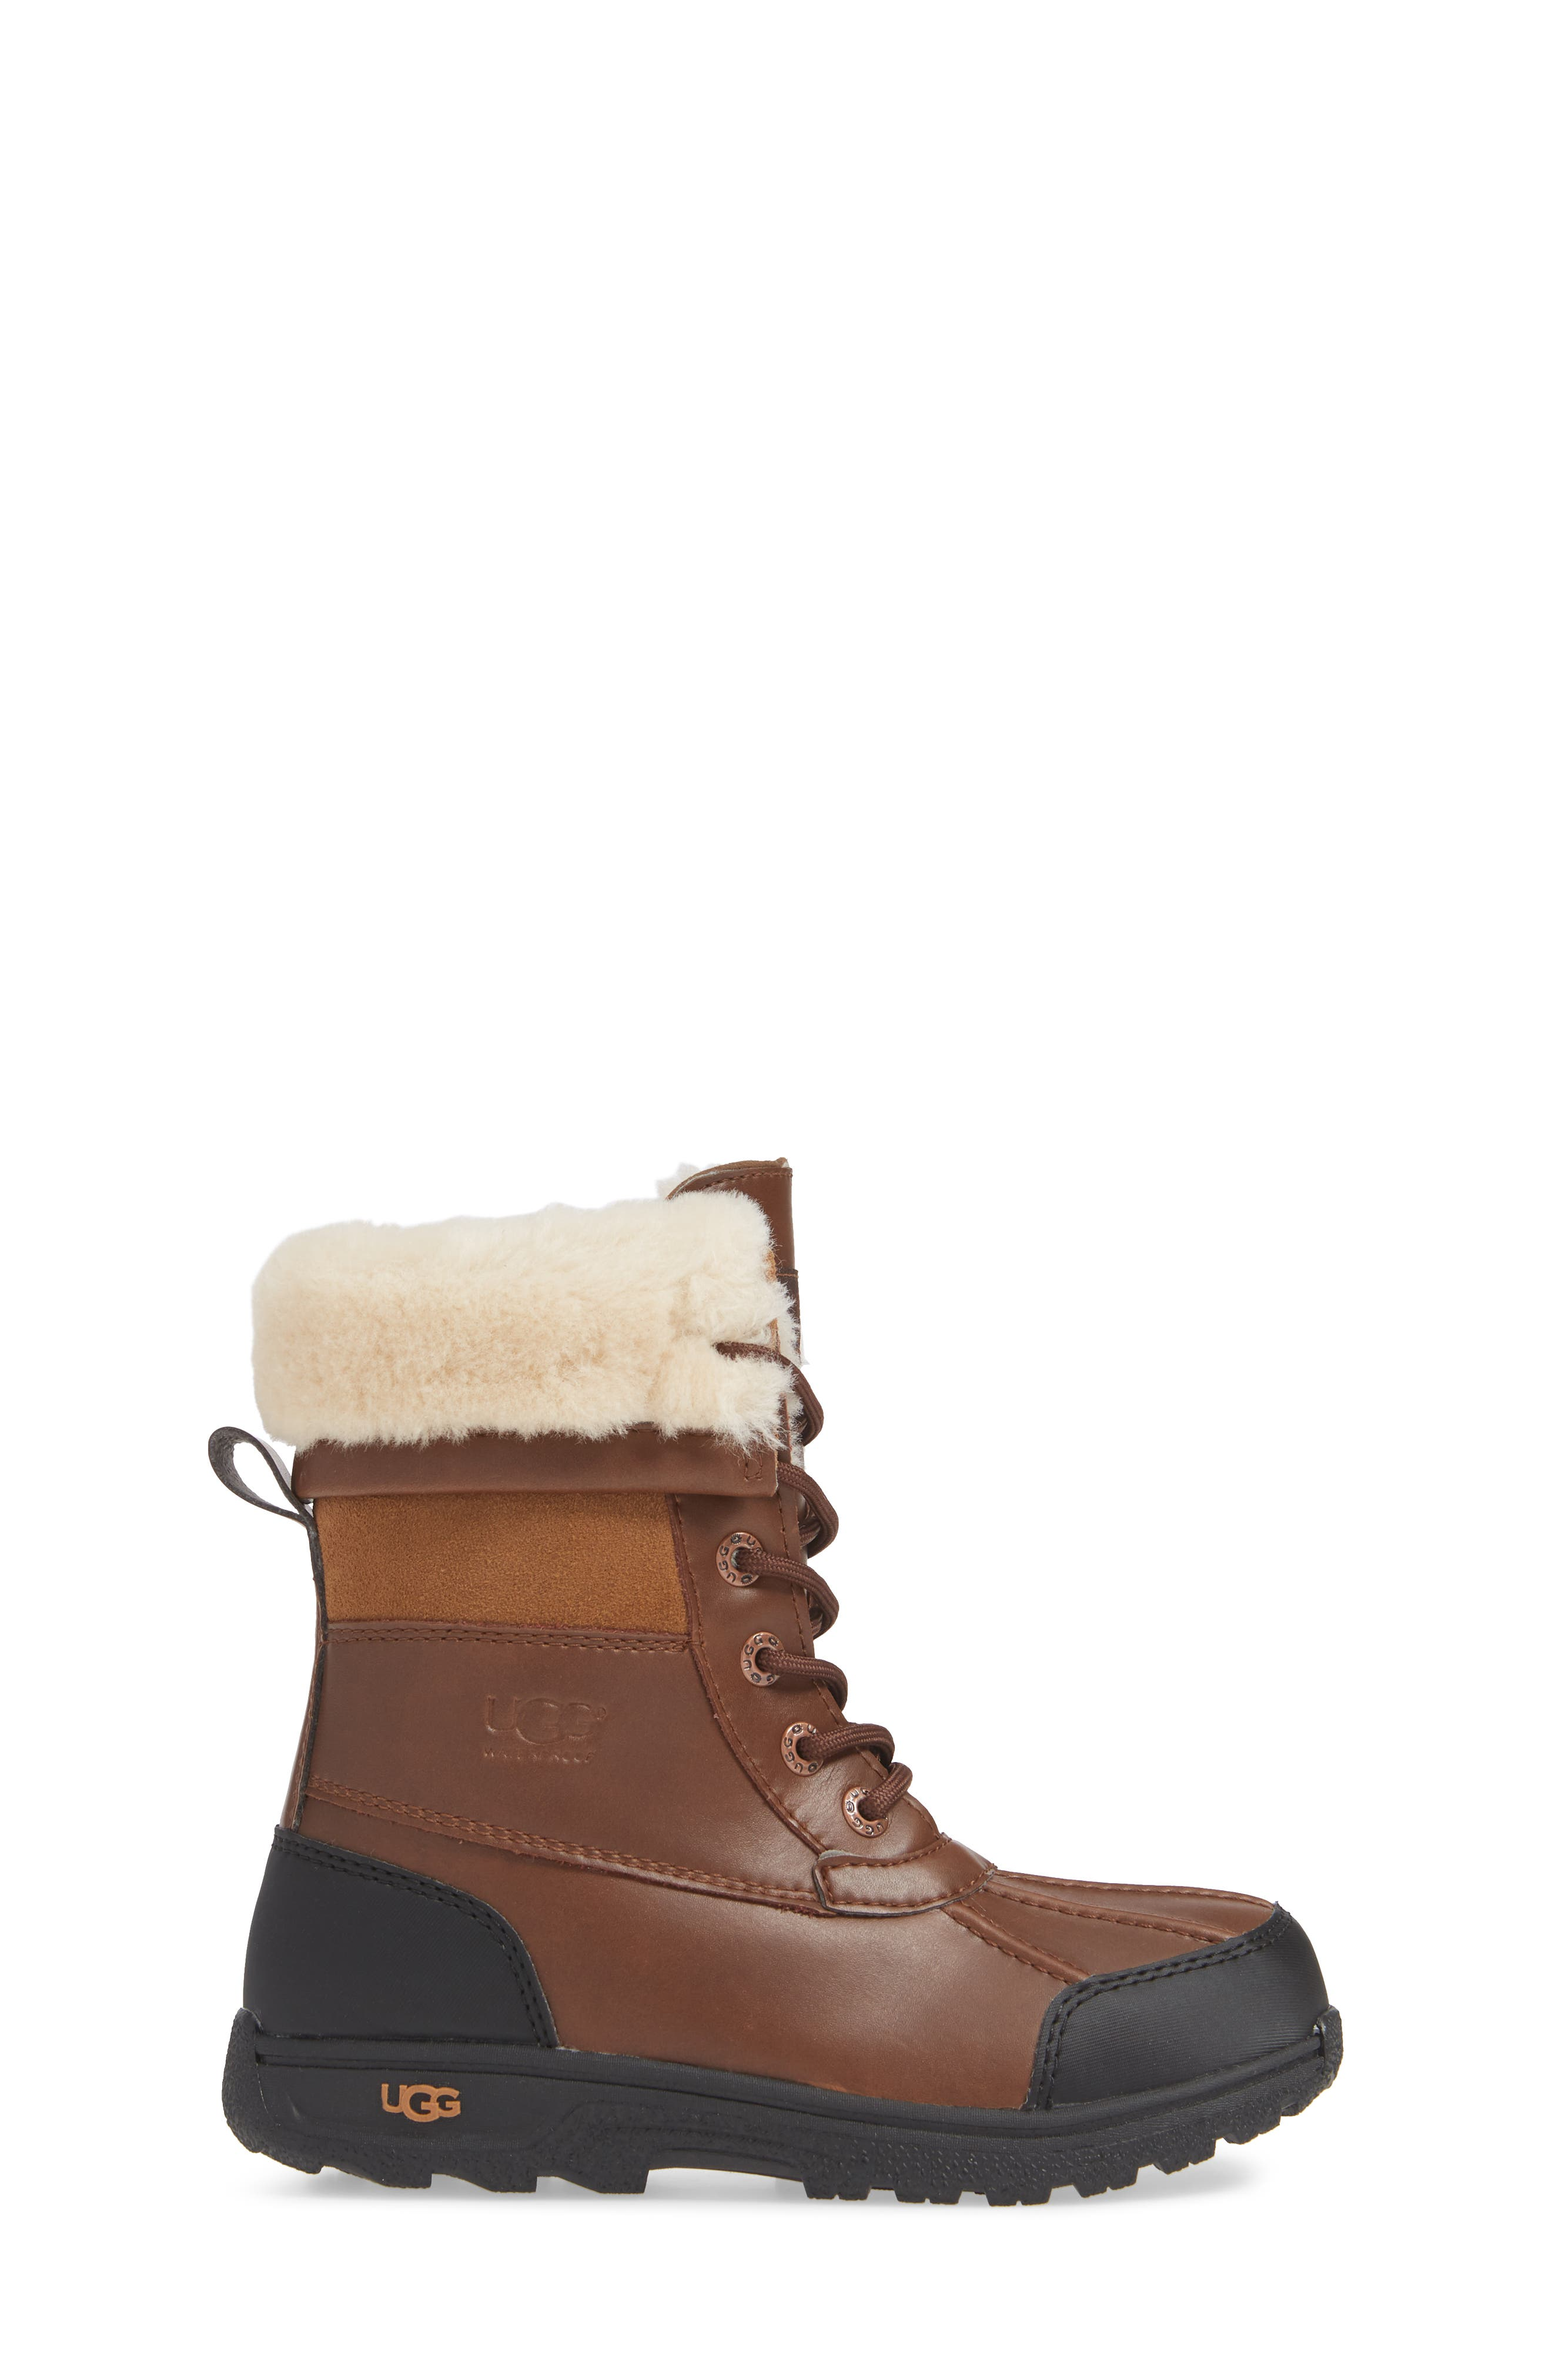 UGG<SUP>®</SUP>, Butte II Waterproof Winter Boot, Alternate thumbnail 3, color, WORCHESTER